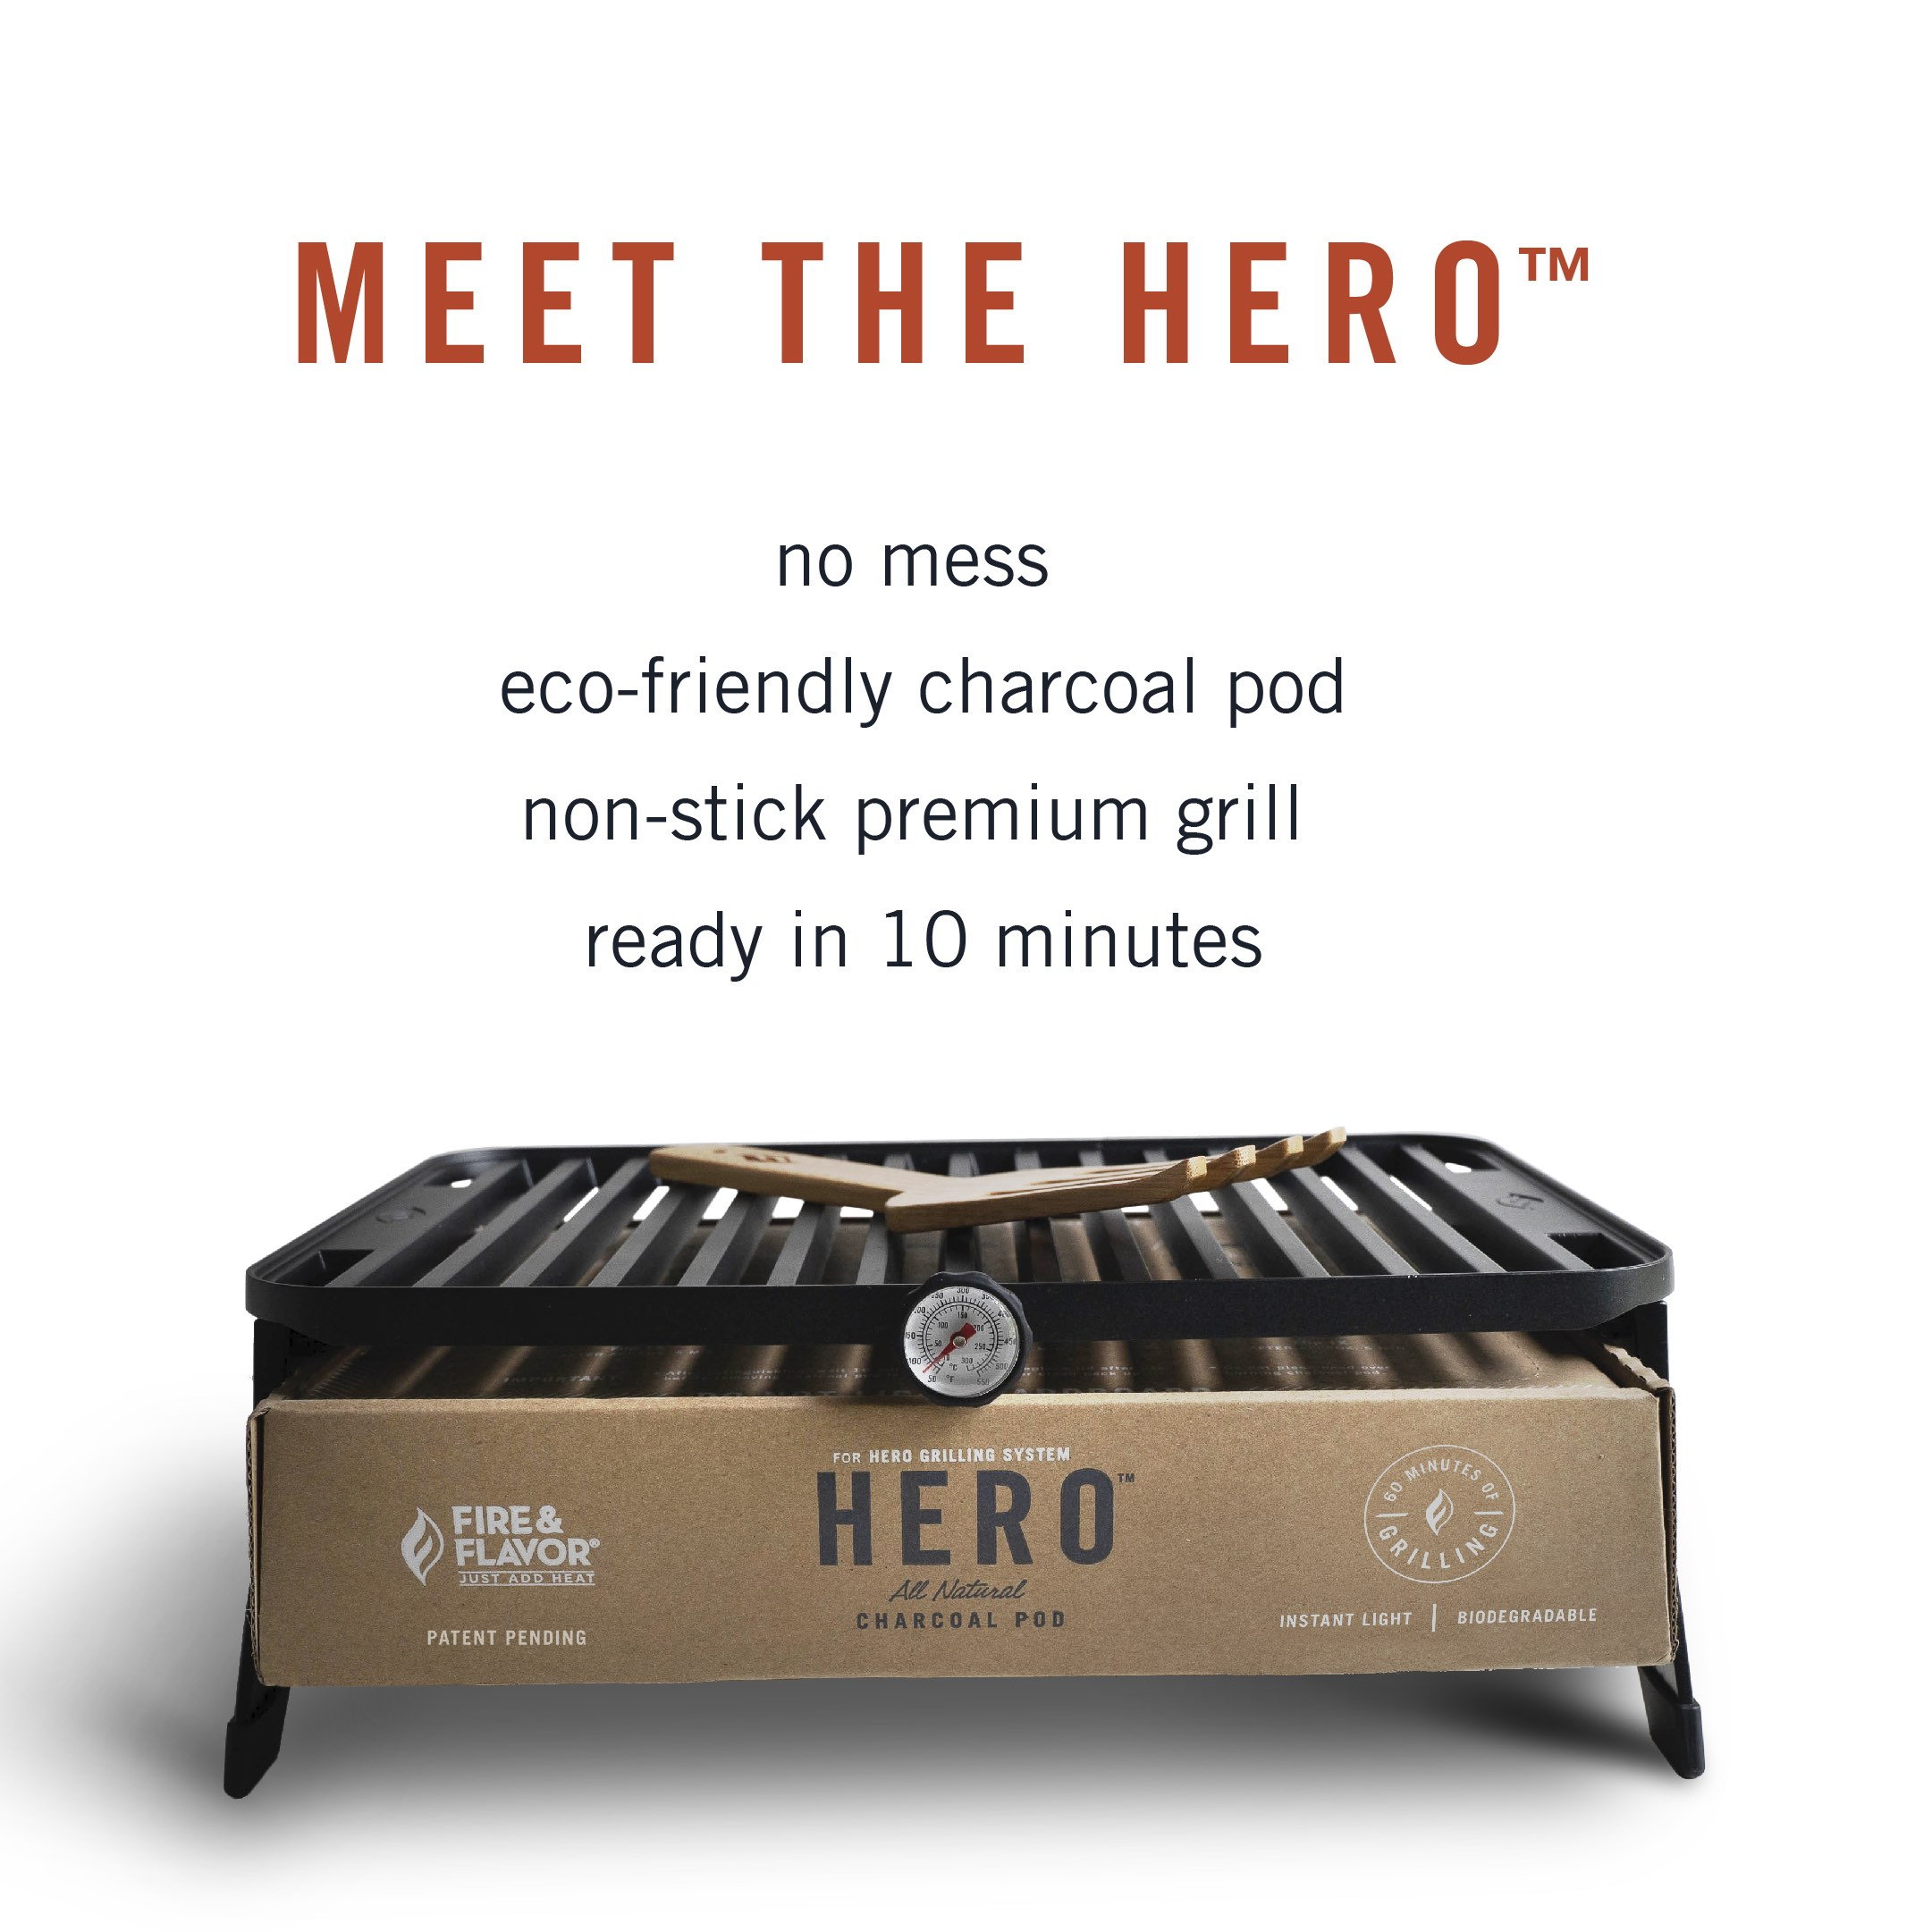 HERO Charcoal Grill